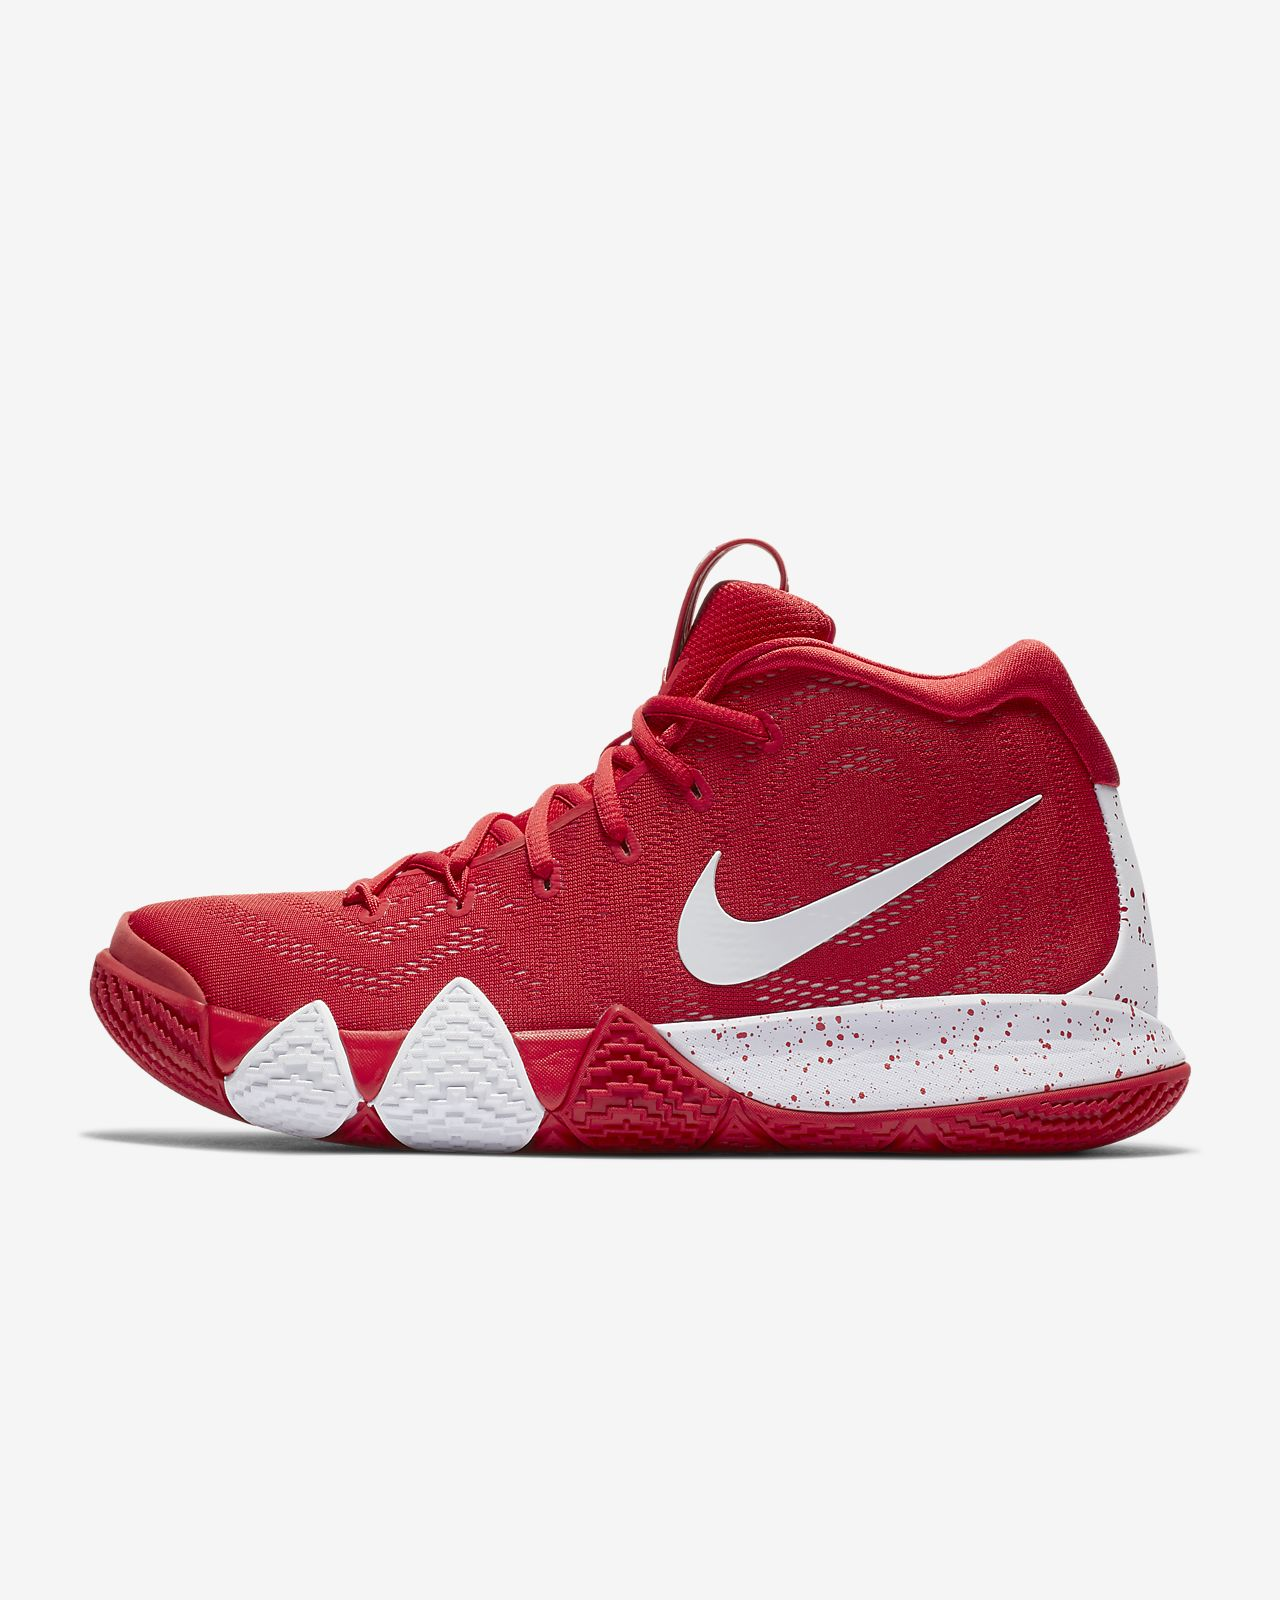 d3558b66a2f8 Kyrie 4 (Team) Basketball Shoe. Nike.com